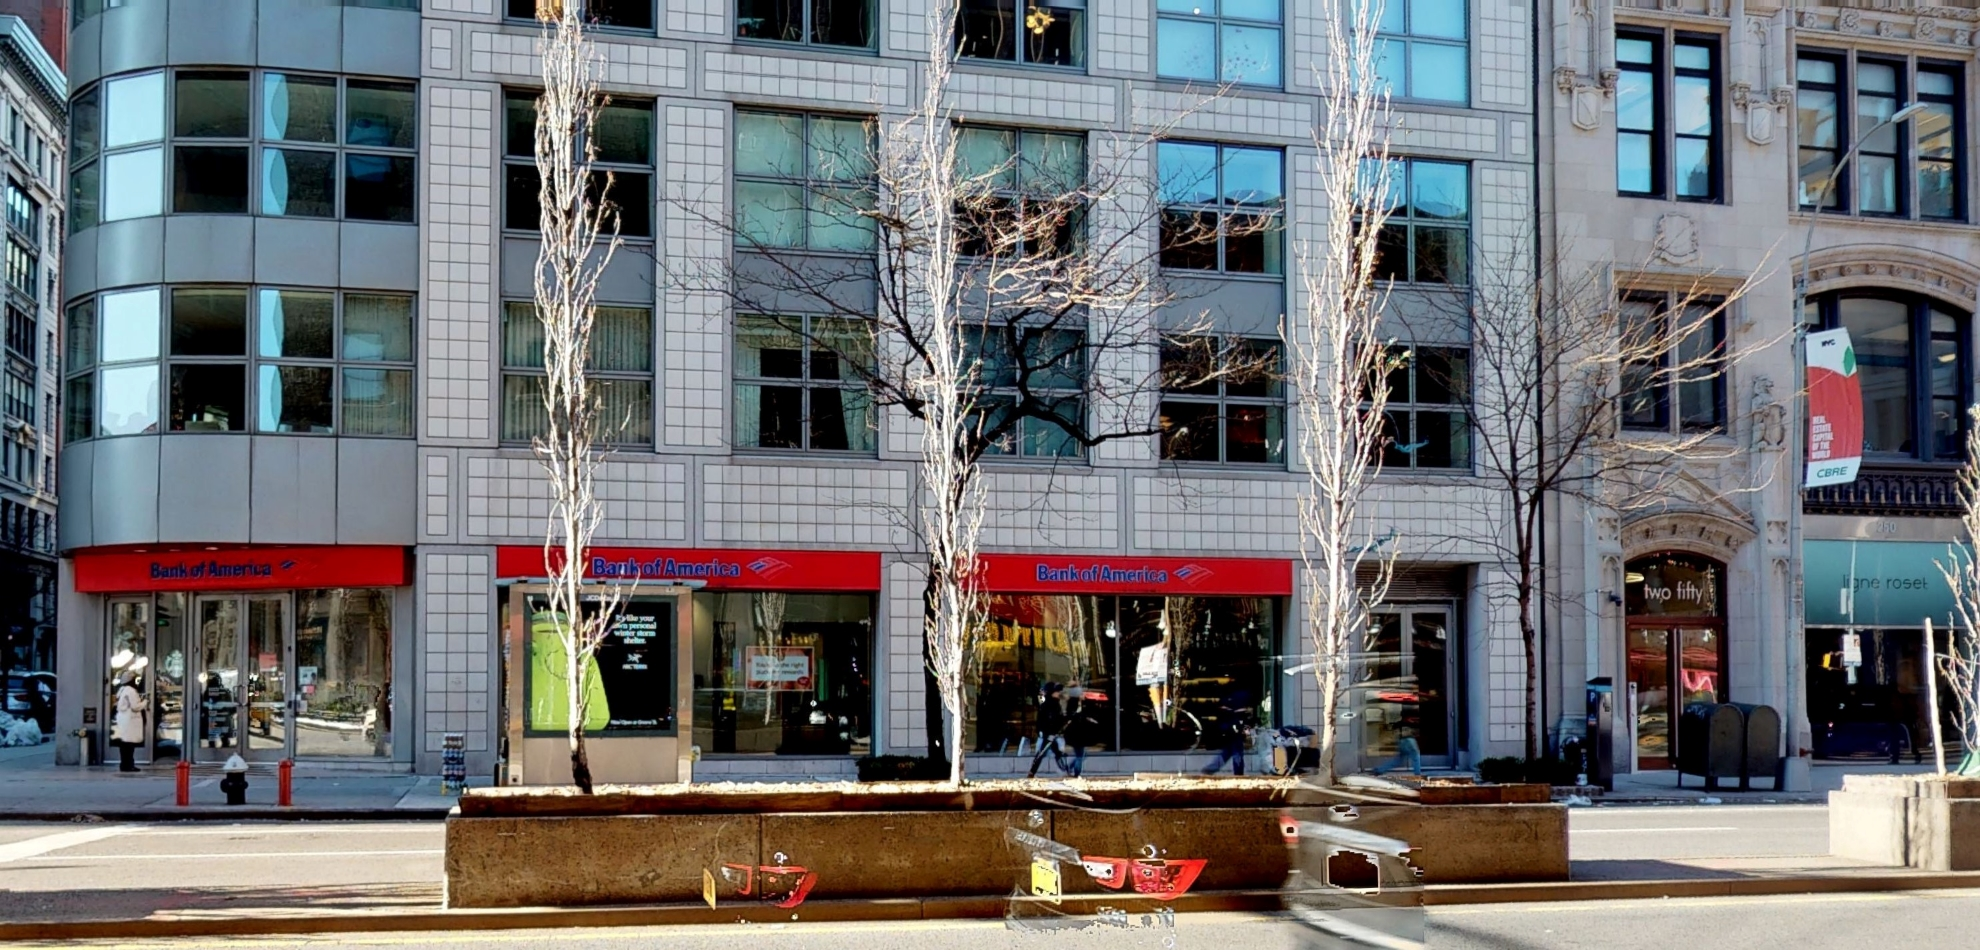 Bank of America financial center with walk-up ATM | 240 Park Ave S, New York, NY 10003